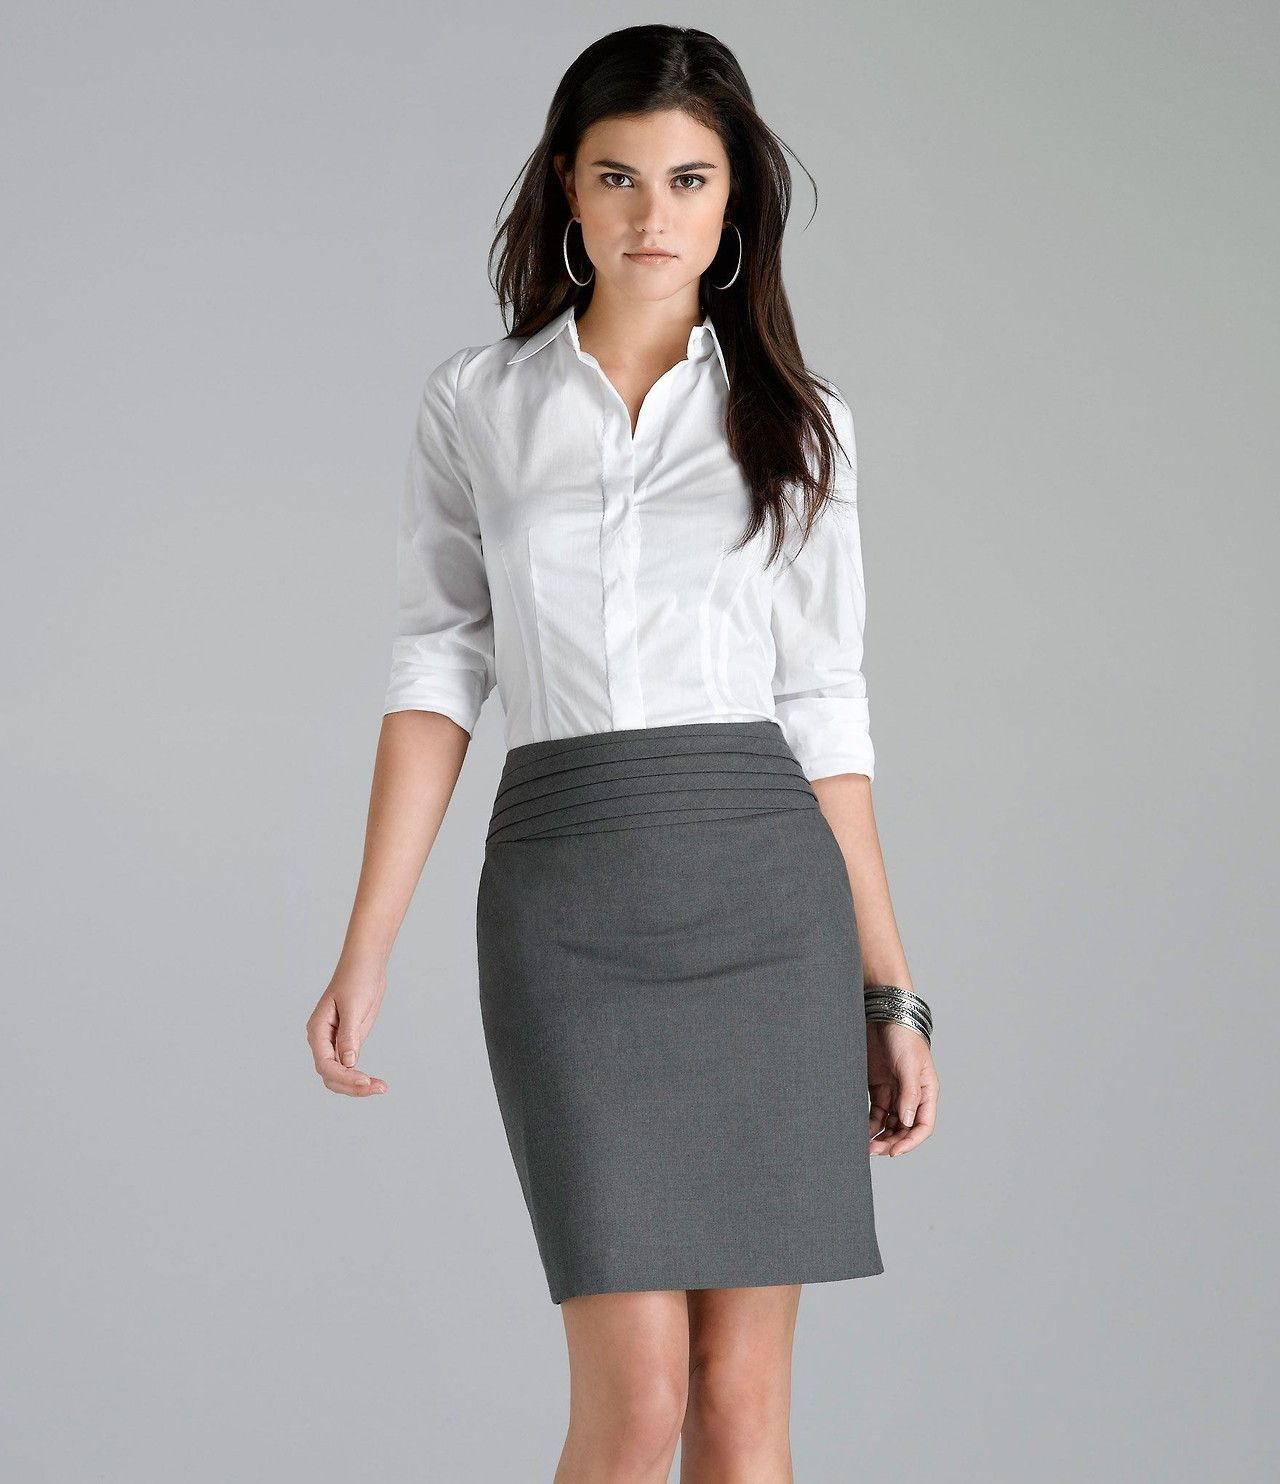 Gray Pencil Skirt and White Blouse | Work Outfits - Gray Skirt ...